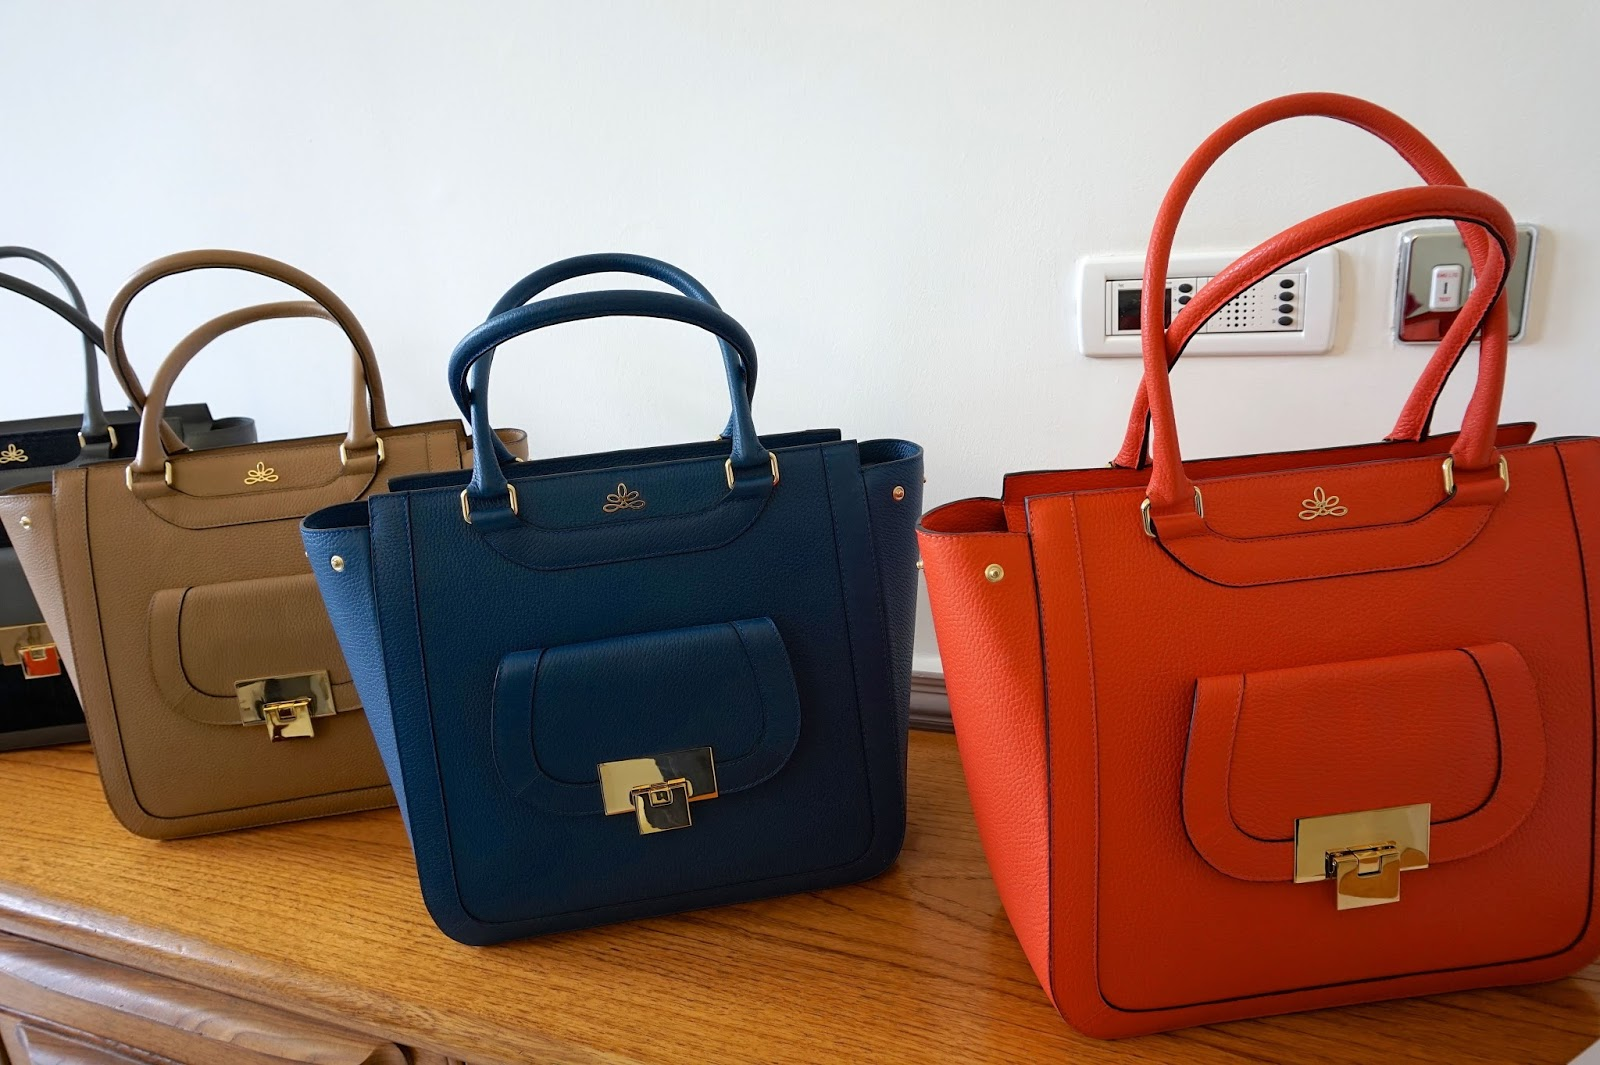 Milli Millu Are Another London Based Brand With Their Handbags Being Firm Celeb Favourites Offer Much More Than Your Standard Handbag As They